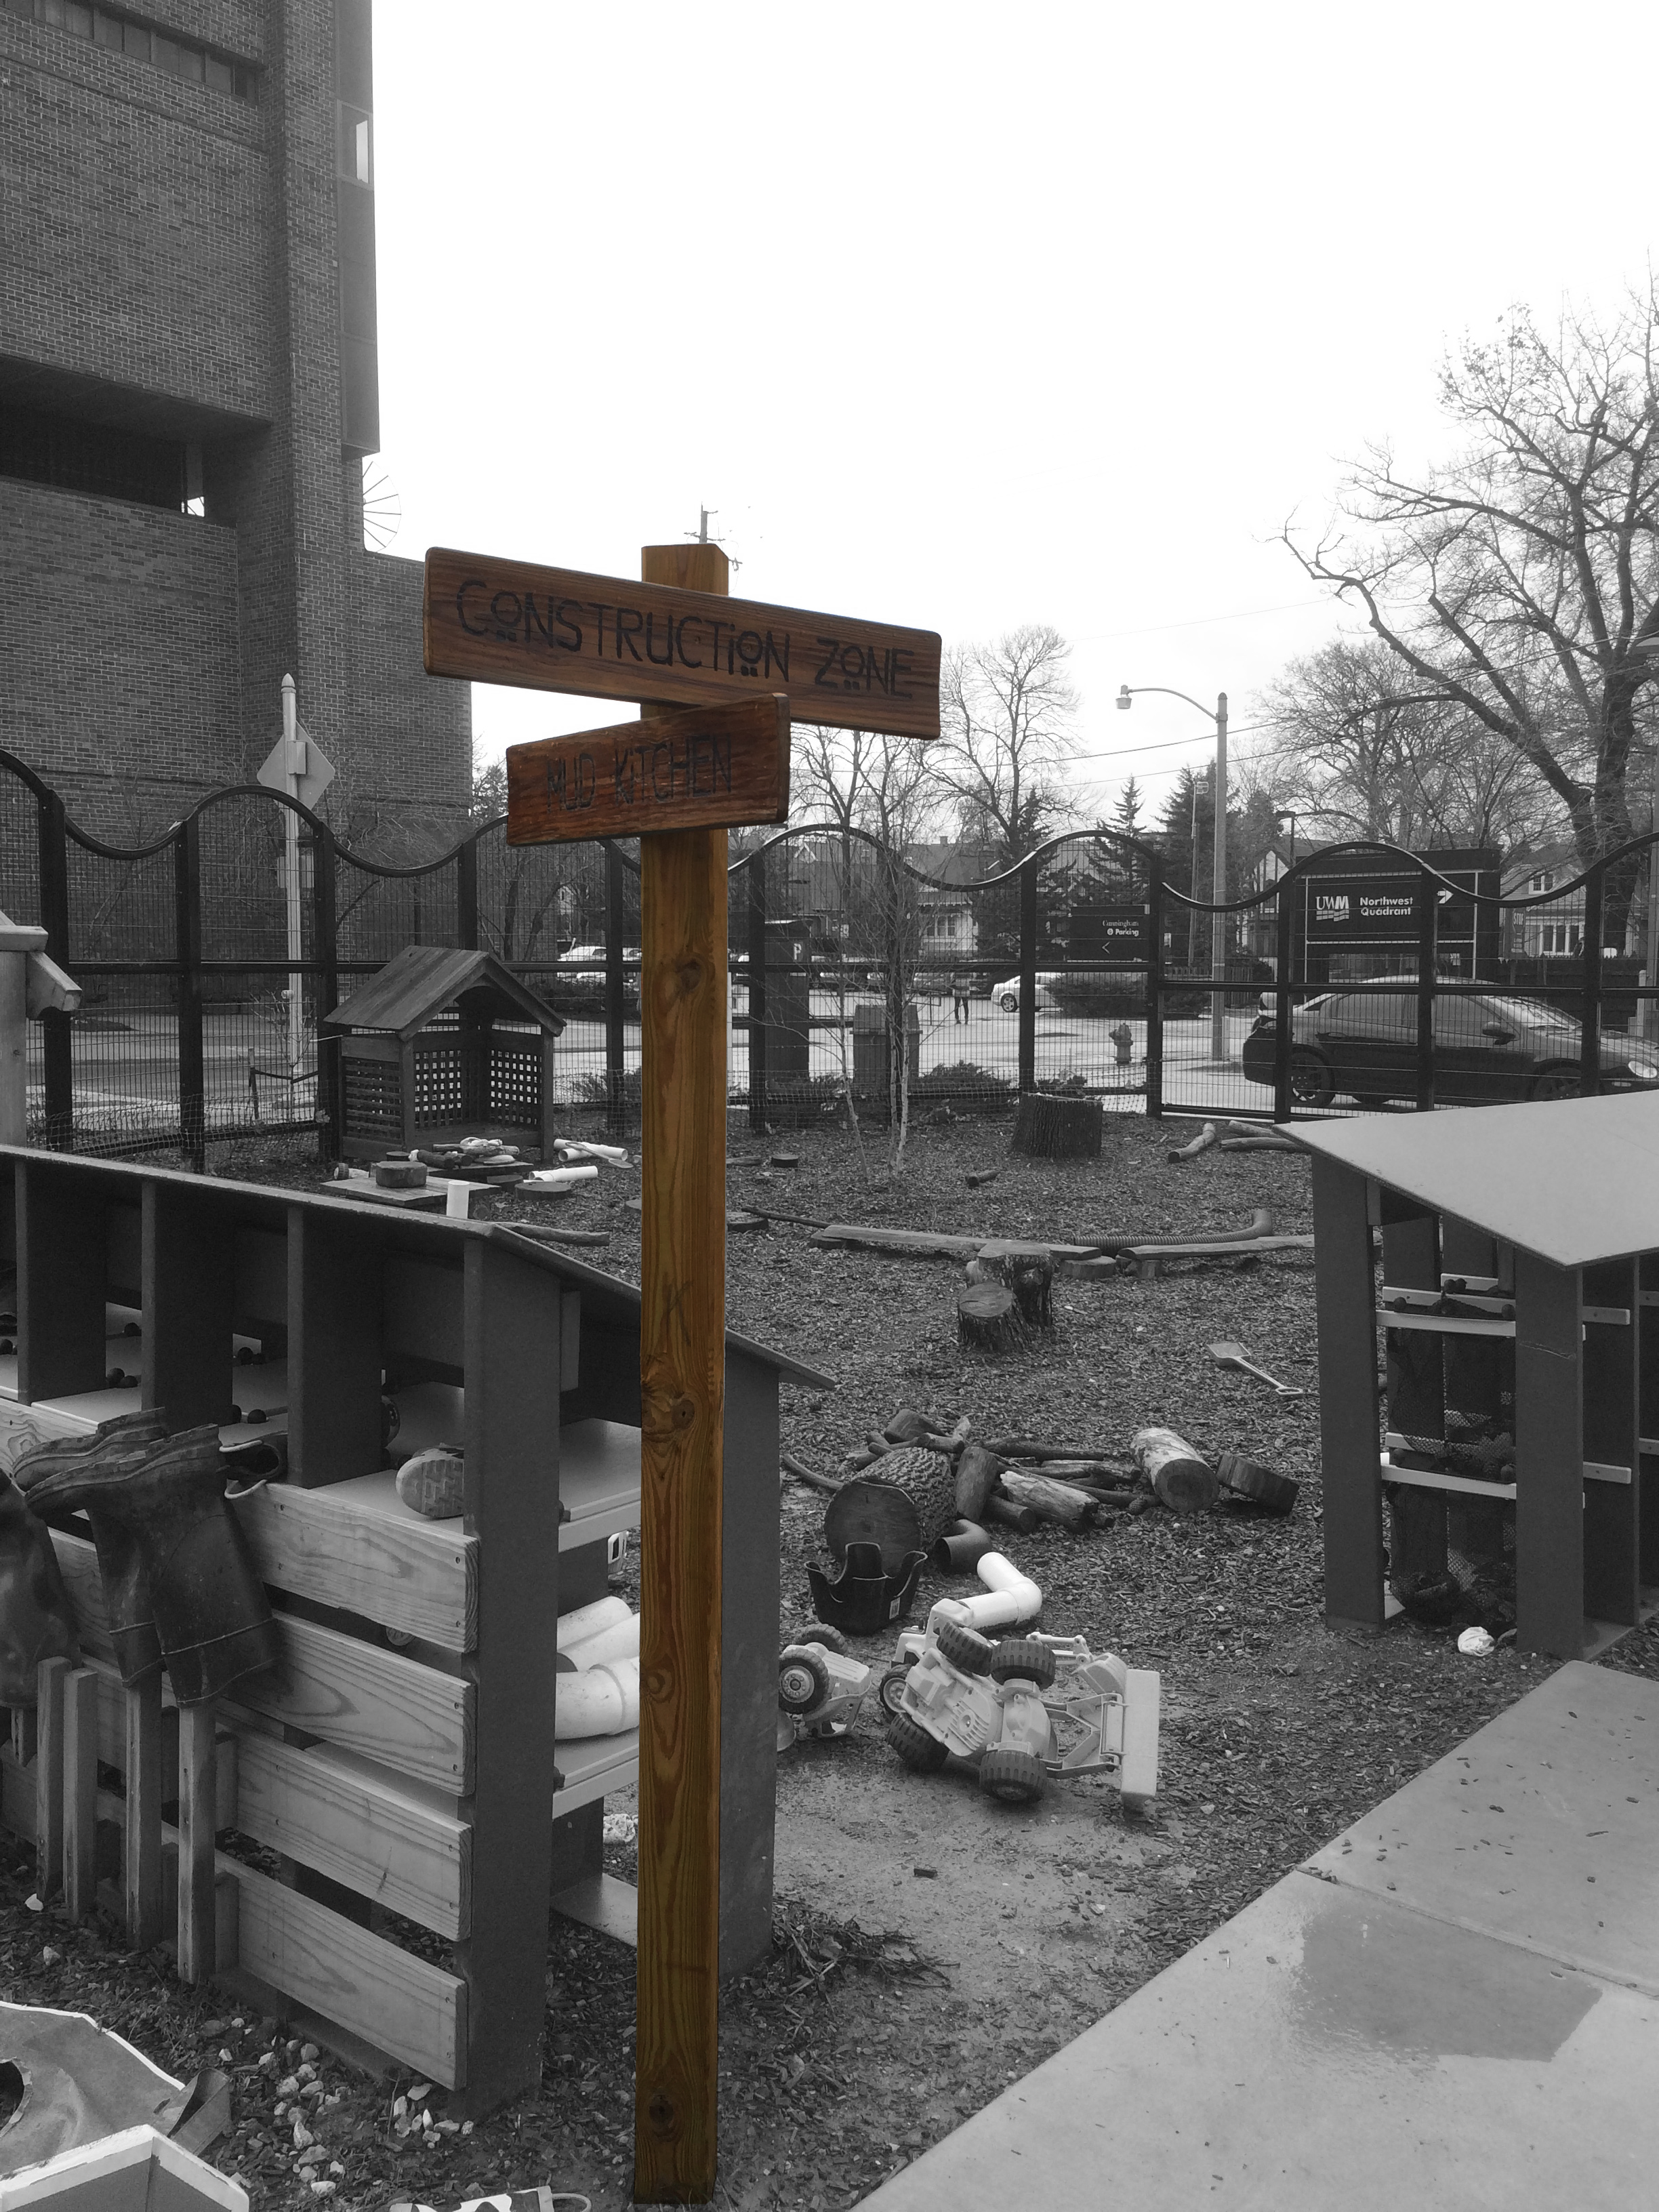 Exterior Signage - Mud Kitchen / Construction Zone